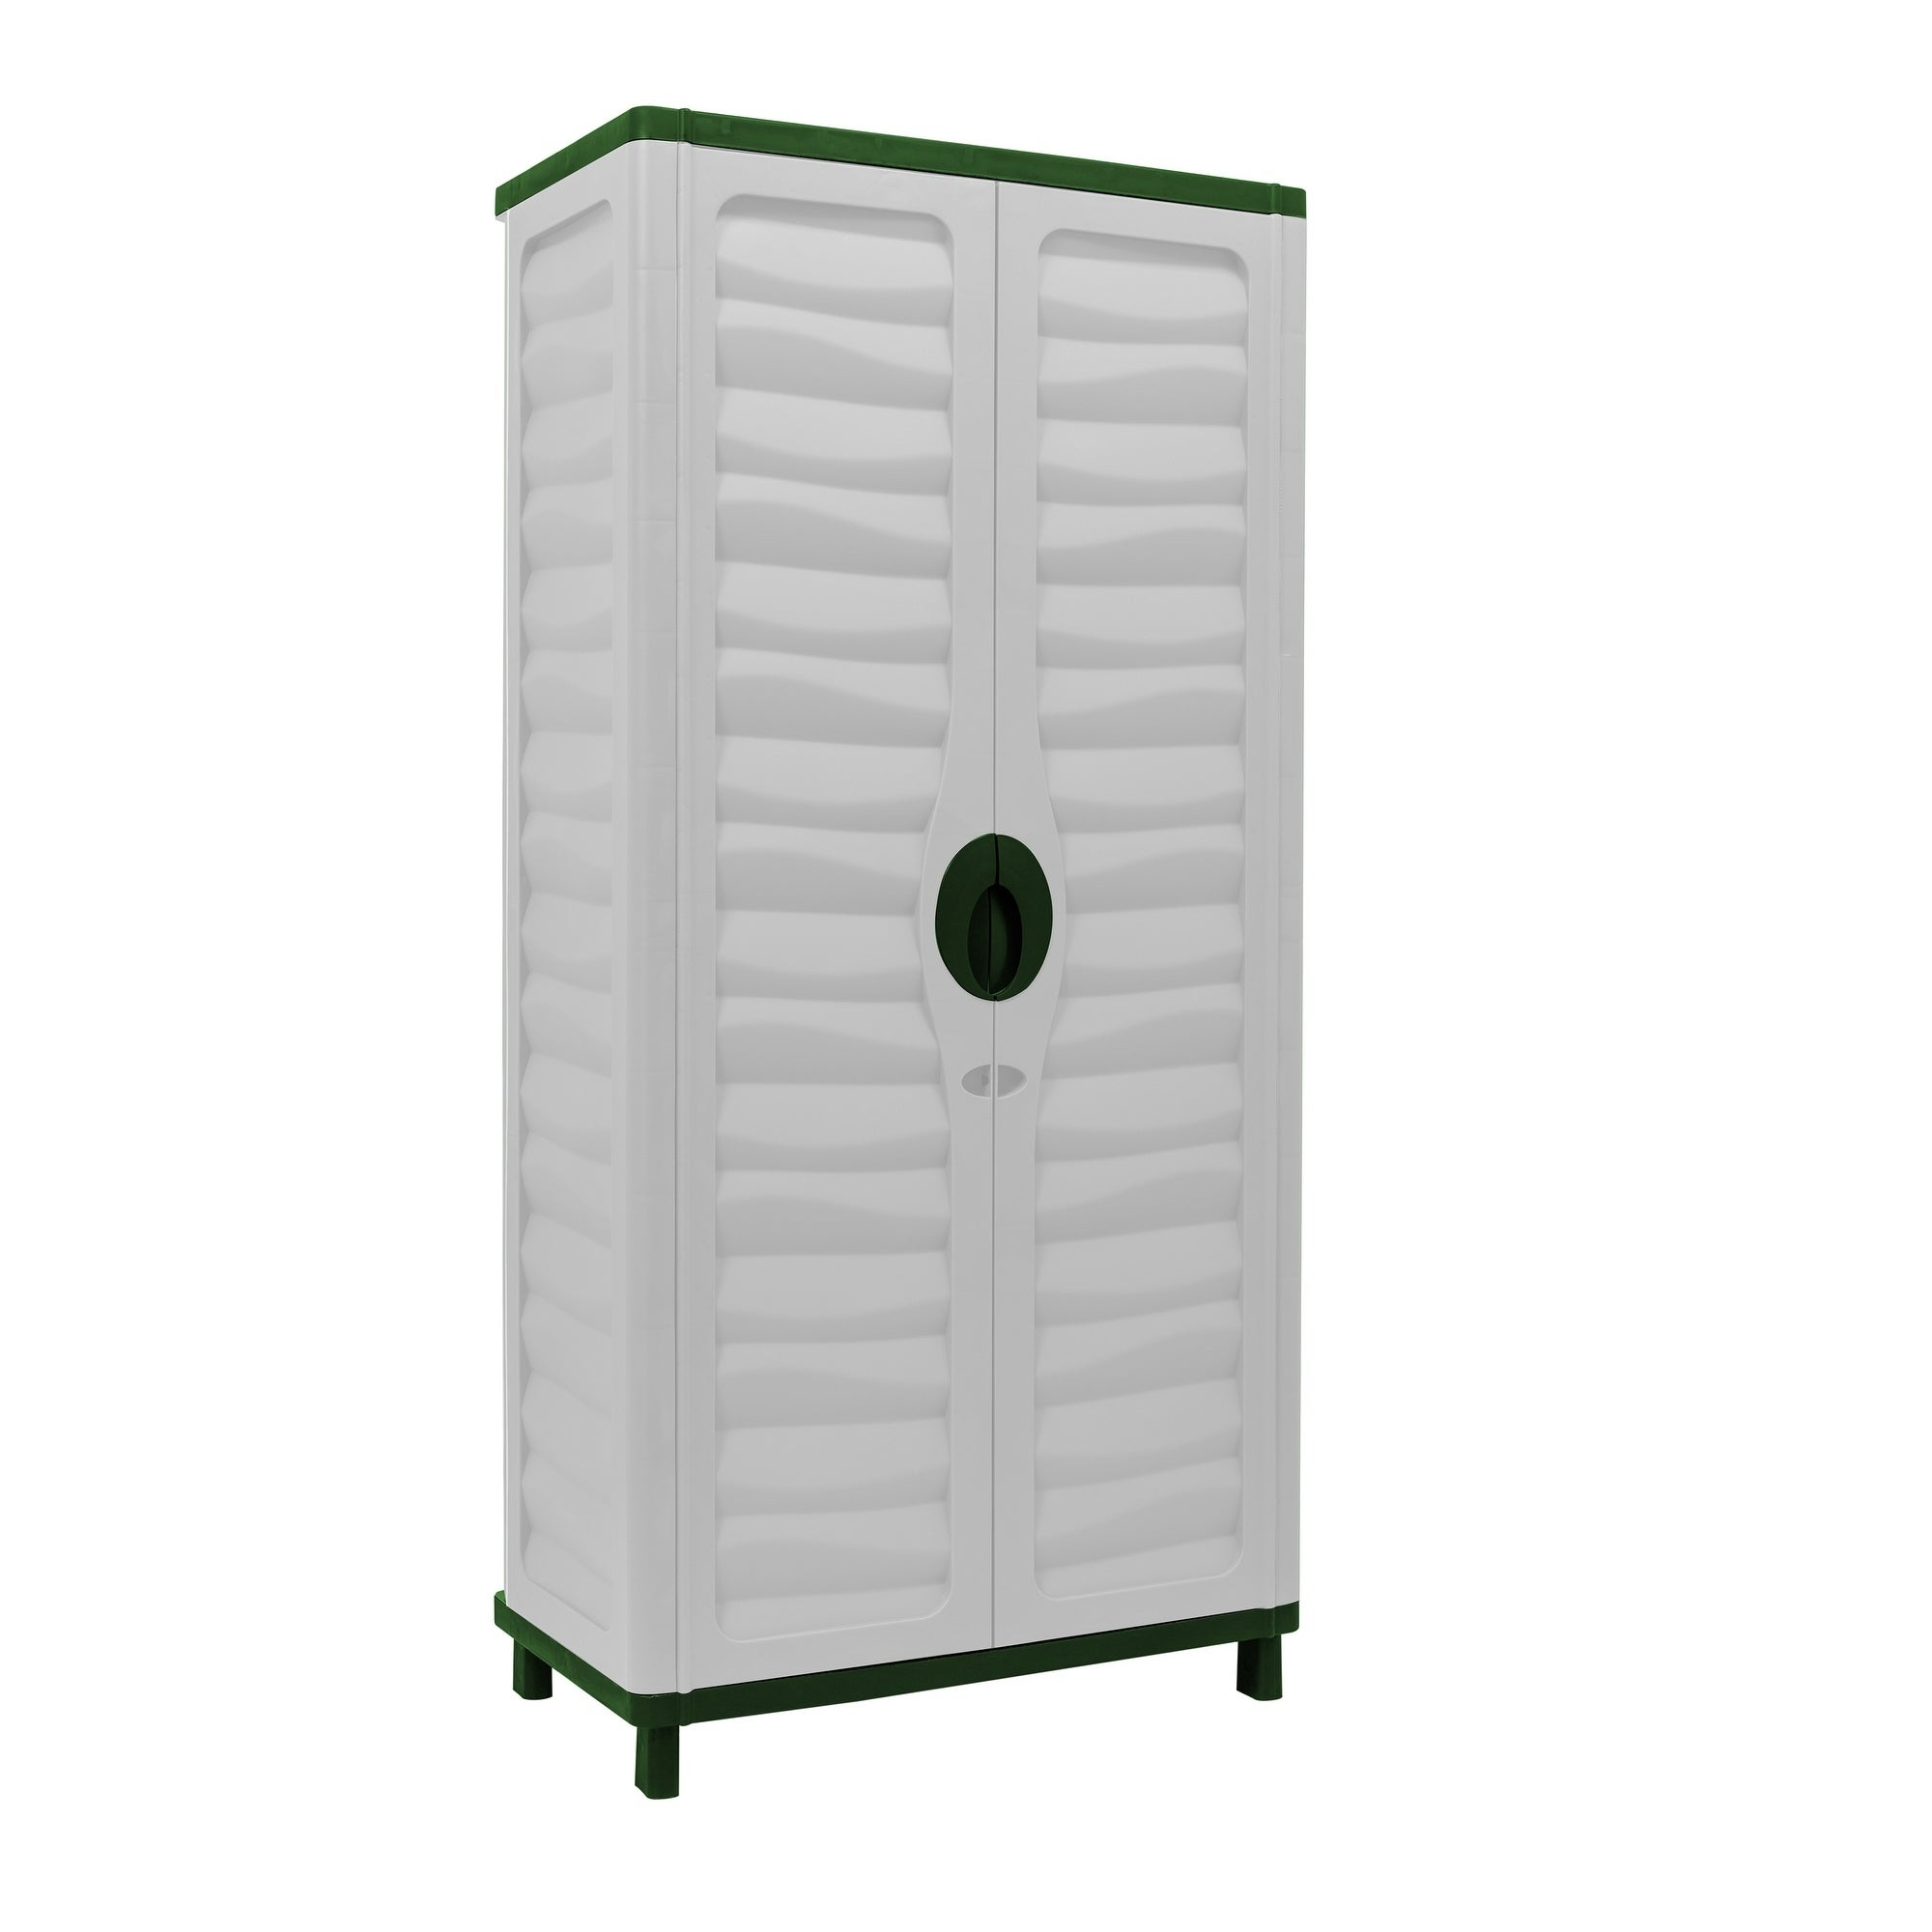 Utility Storage Cabinet Garage Tools Shelves Kitchen Cupboard Laundry Closet New  sc 1 st  eBay & Utility Storage Cabinet Garage Tools Shelves Kitchen Cupboard ...